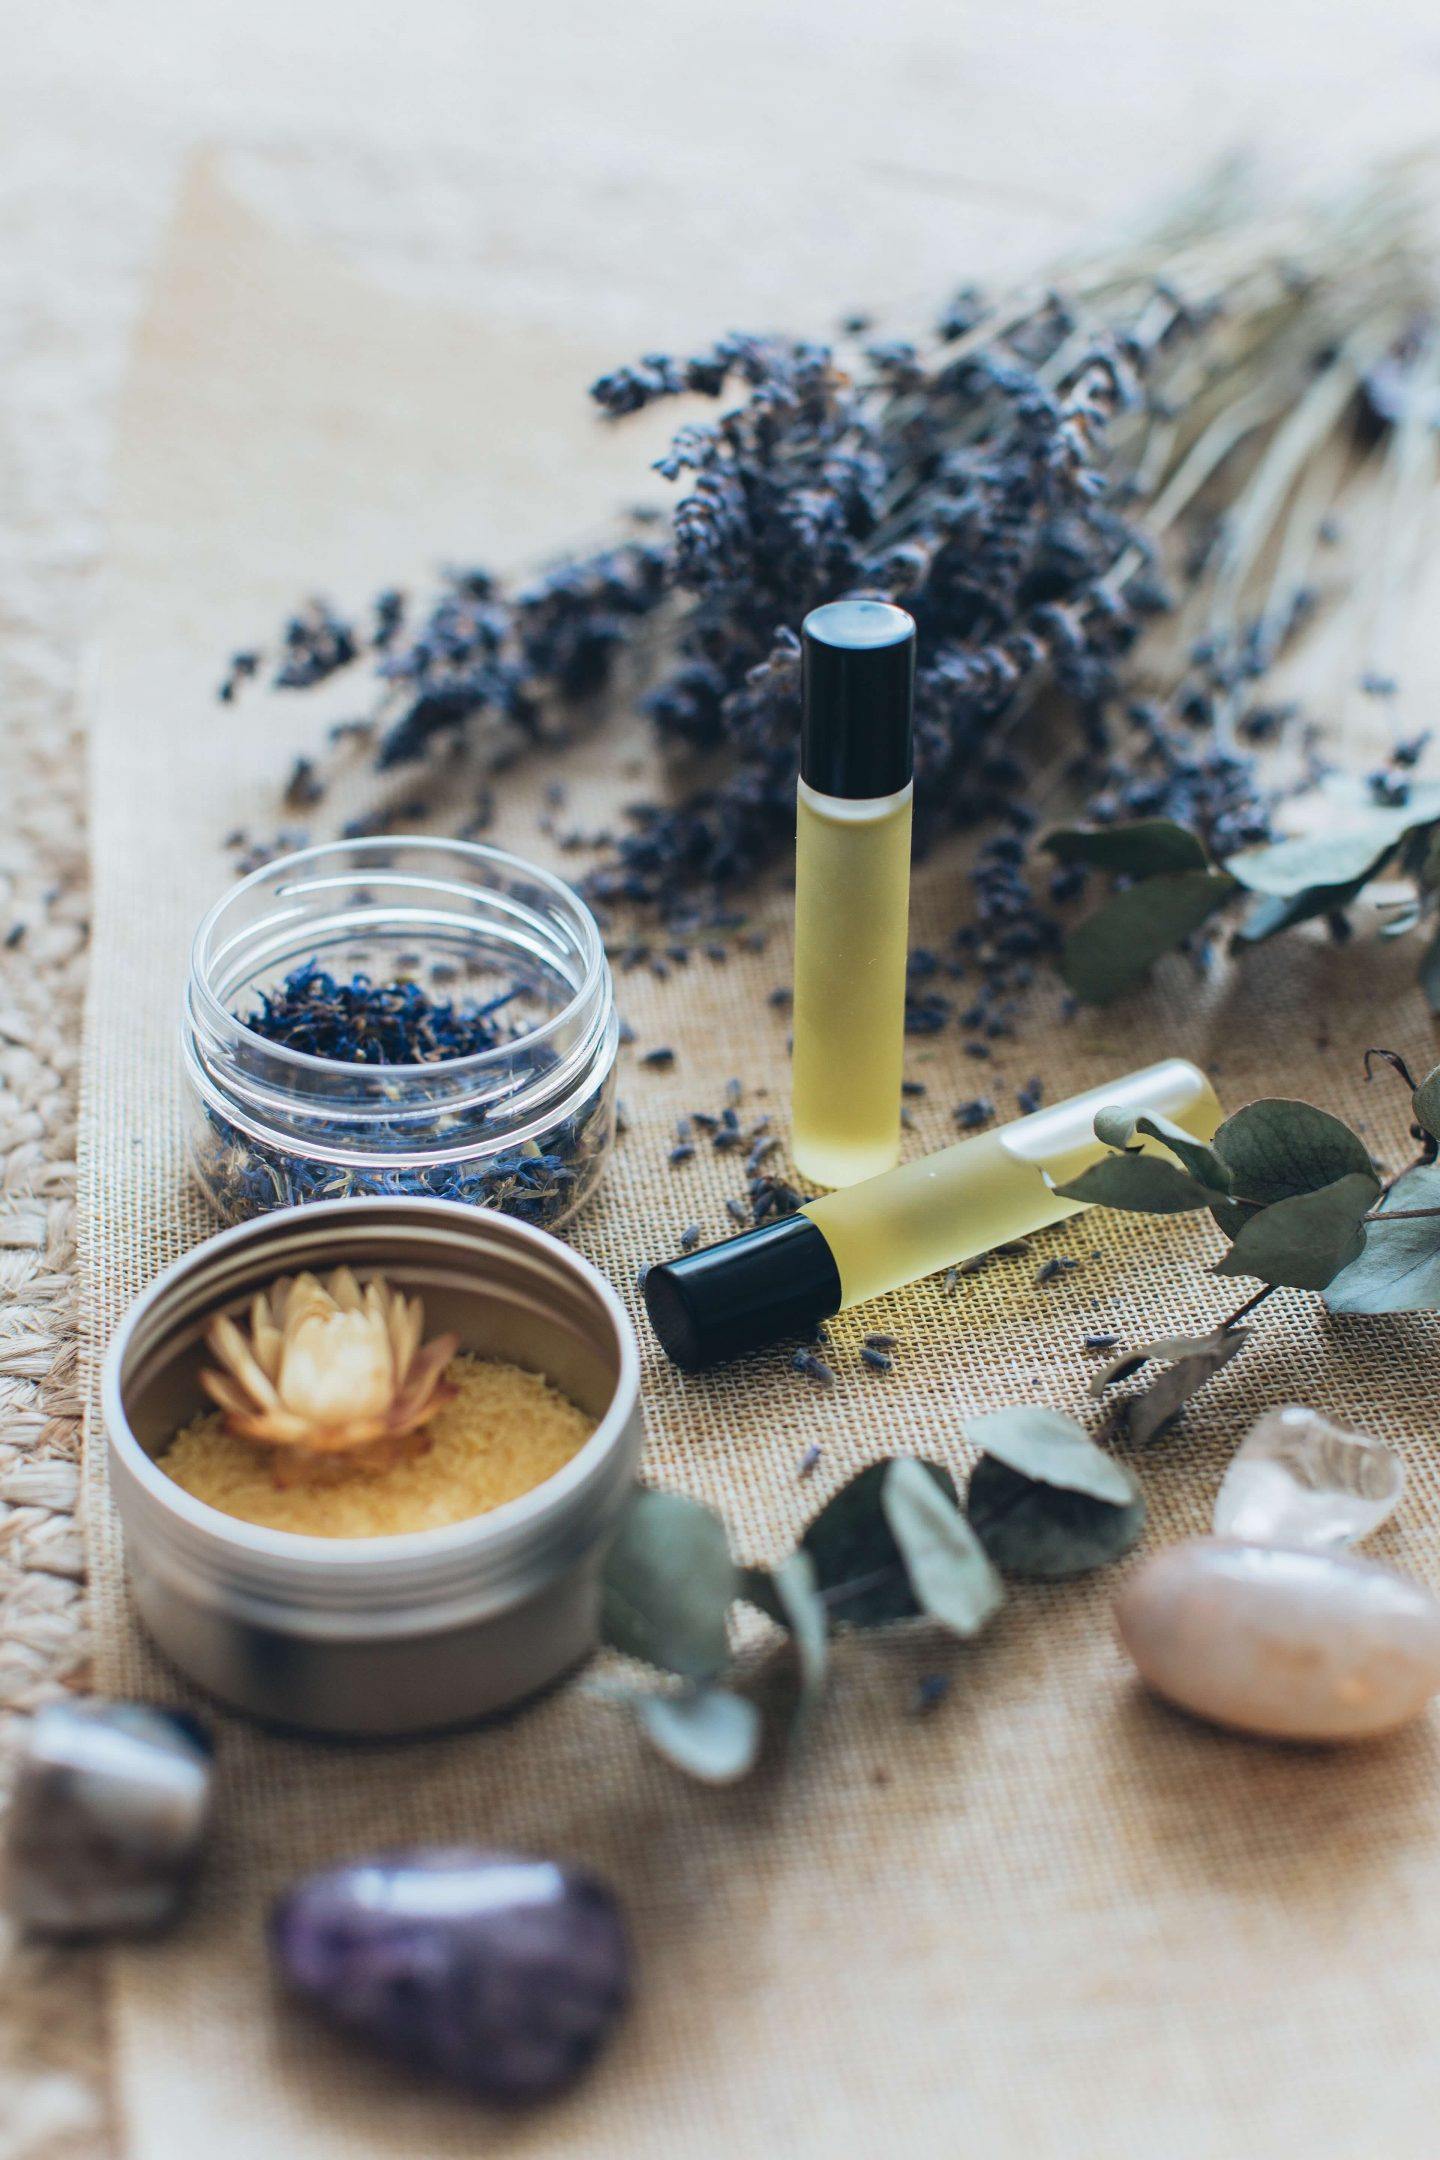 Can blemish prone skin use oils